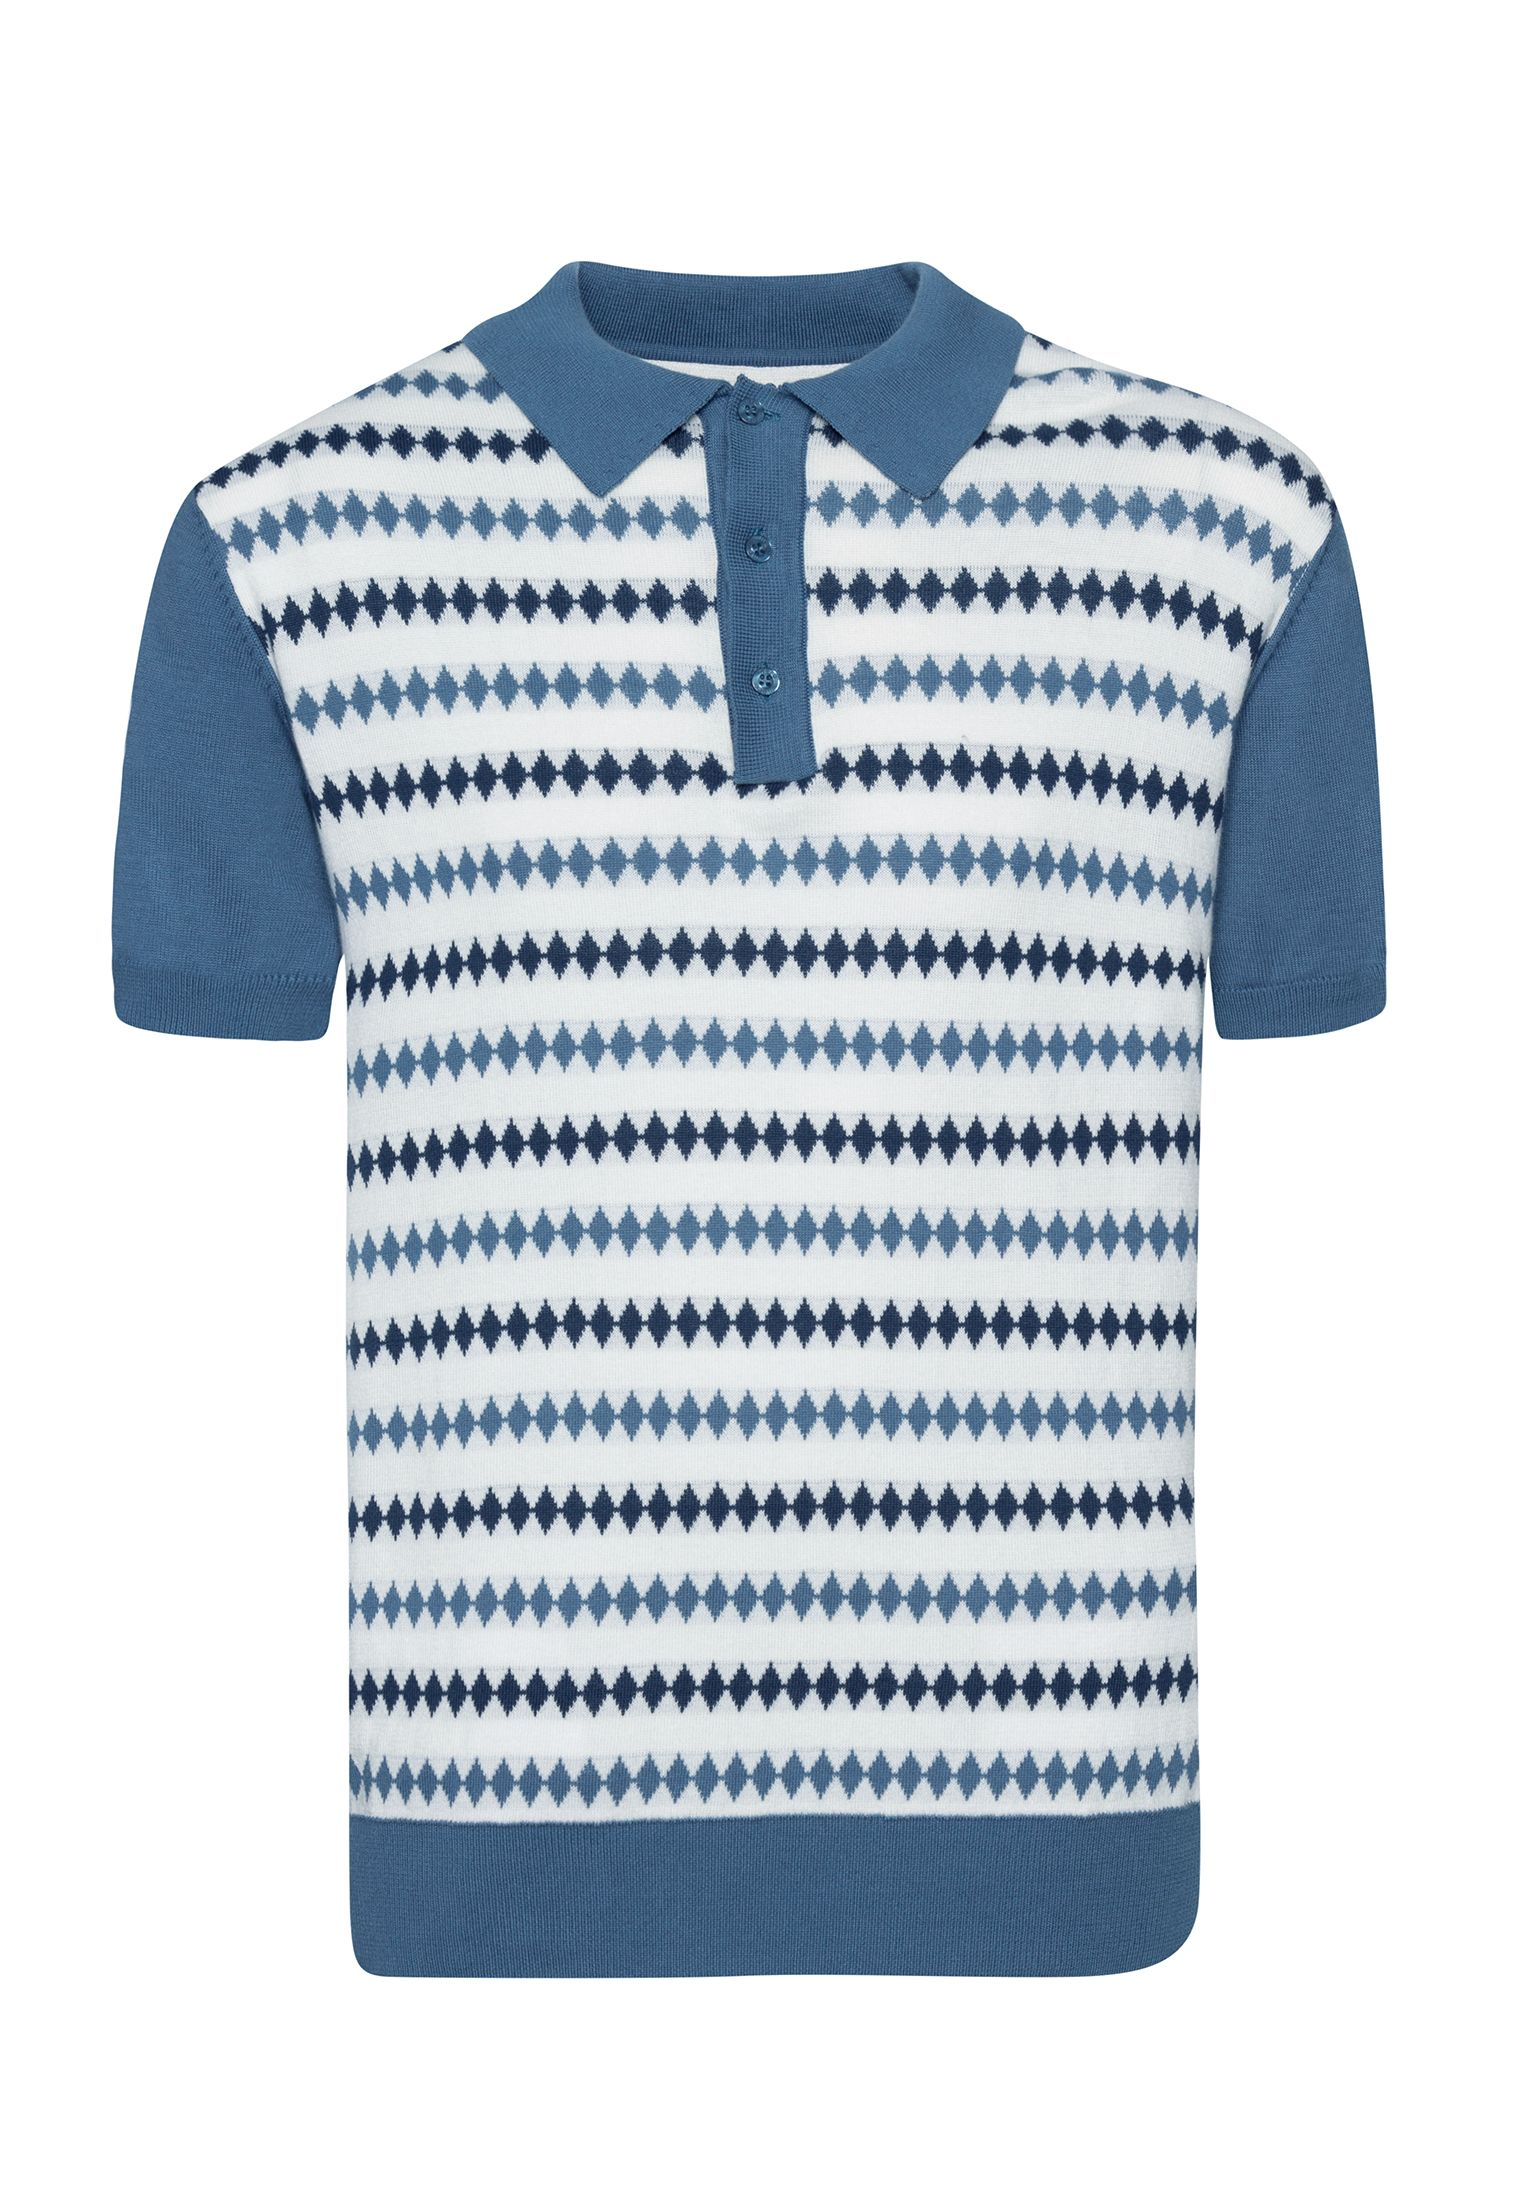 Farley Diamond Jacquard Knit Polo In Vintage Blue